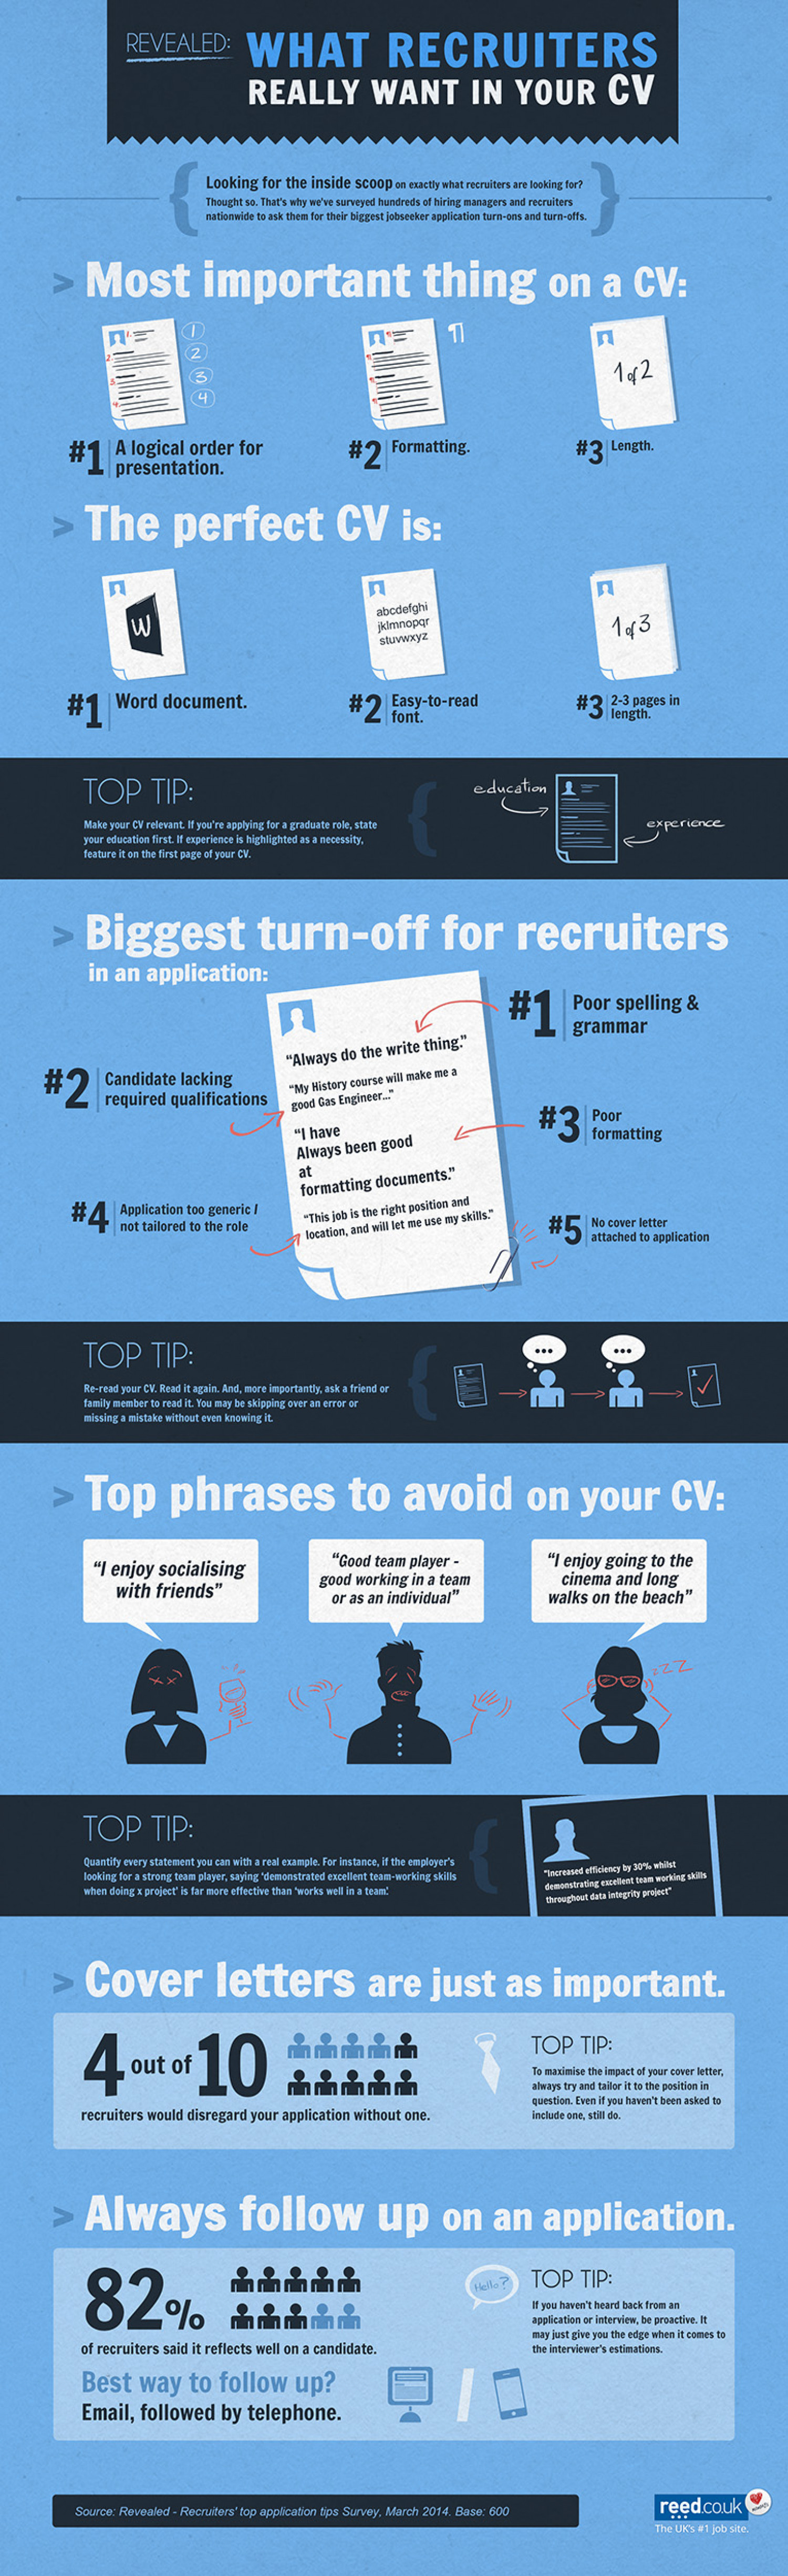 Revealed: What Recruiters Really Want in Your CV Infographic